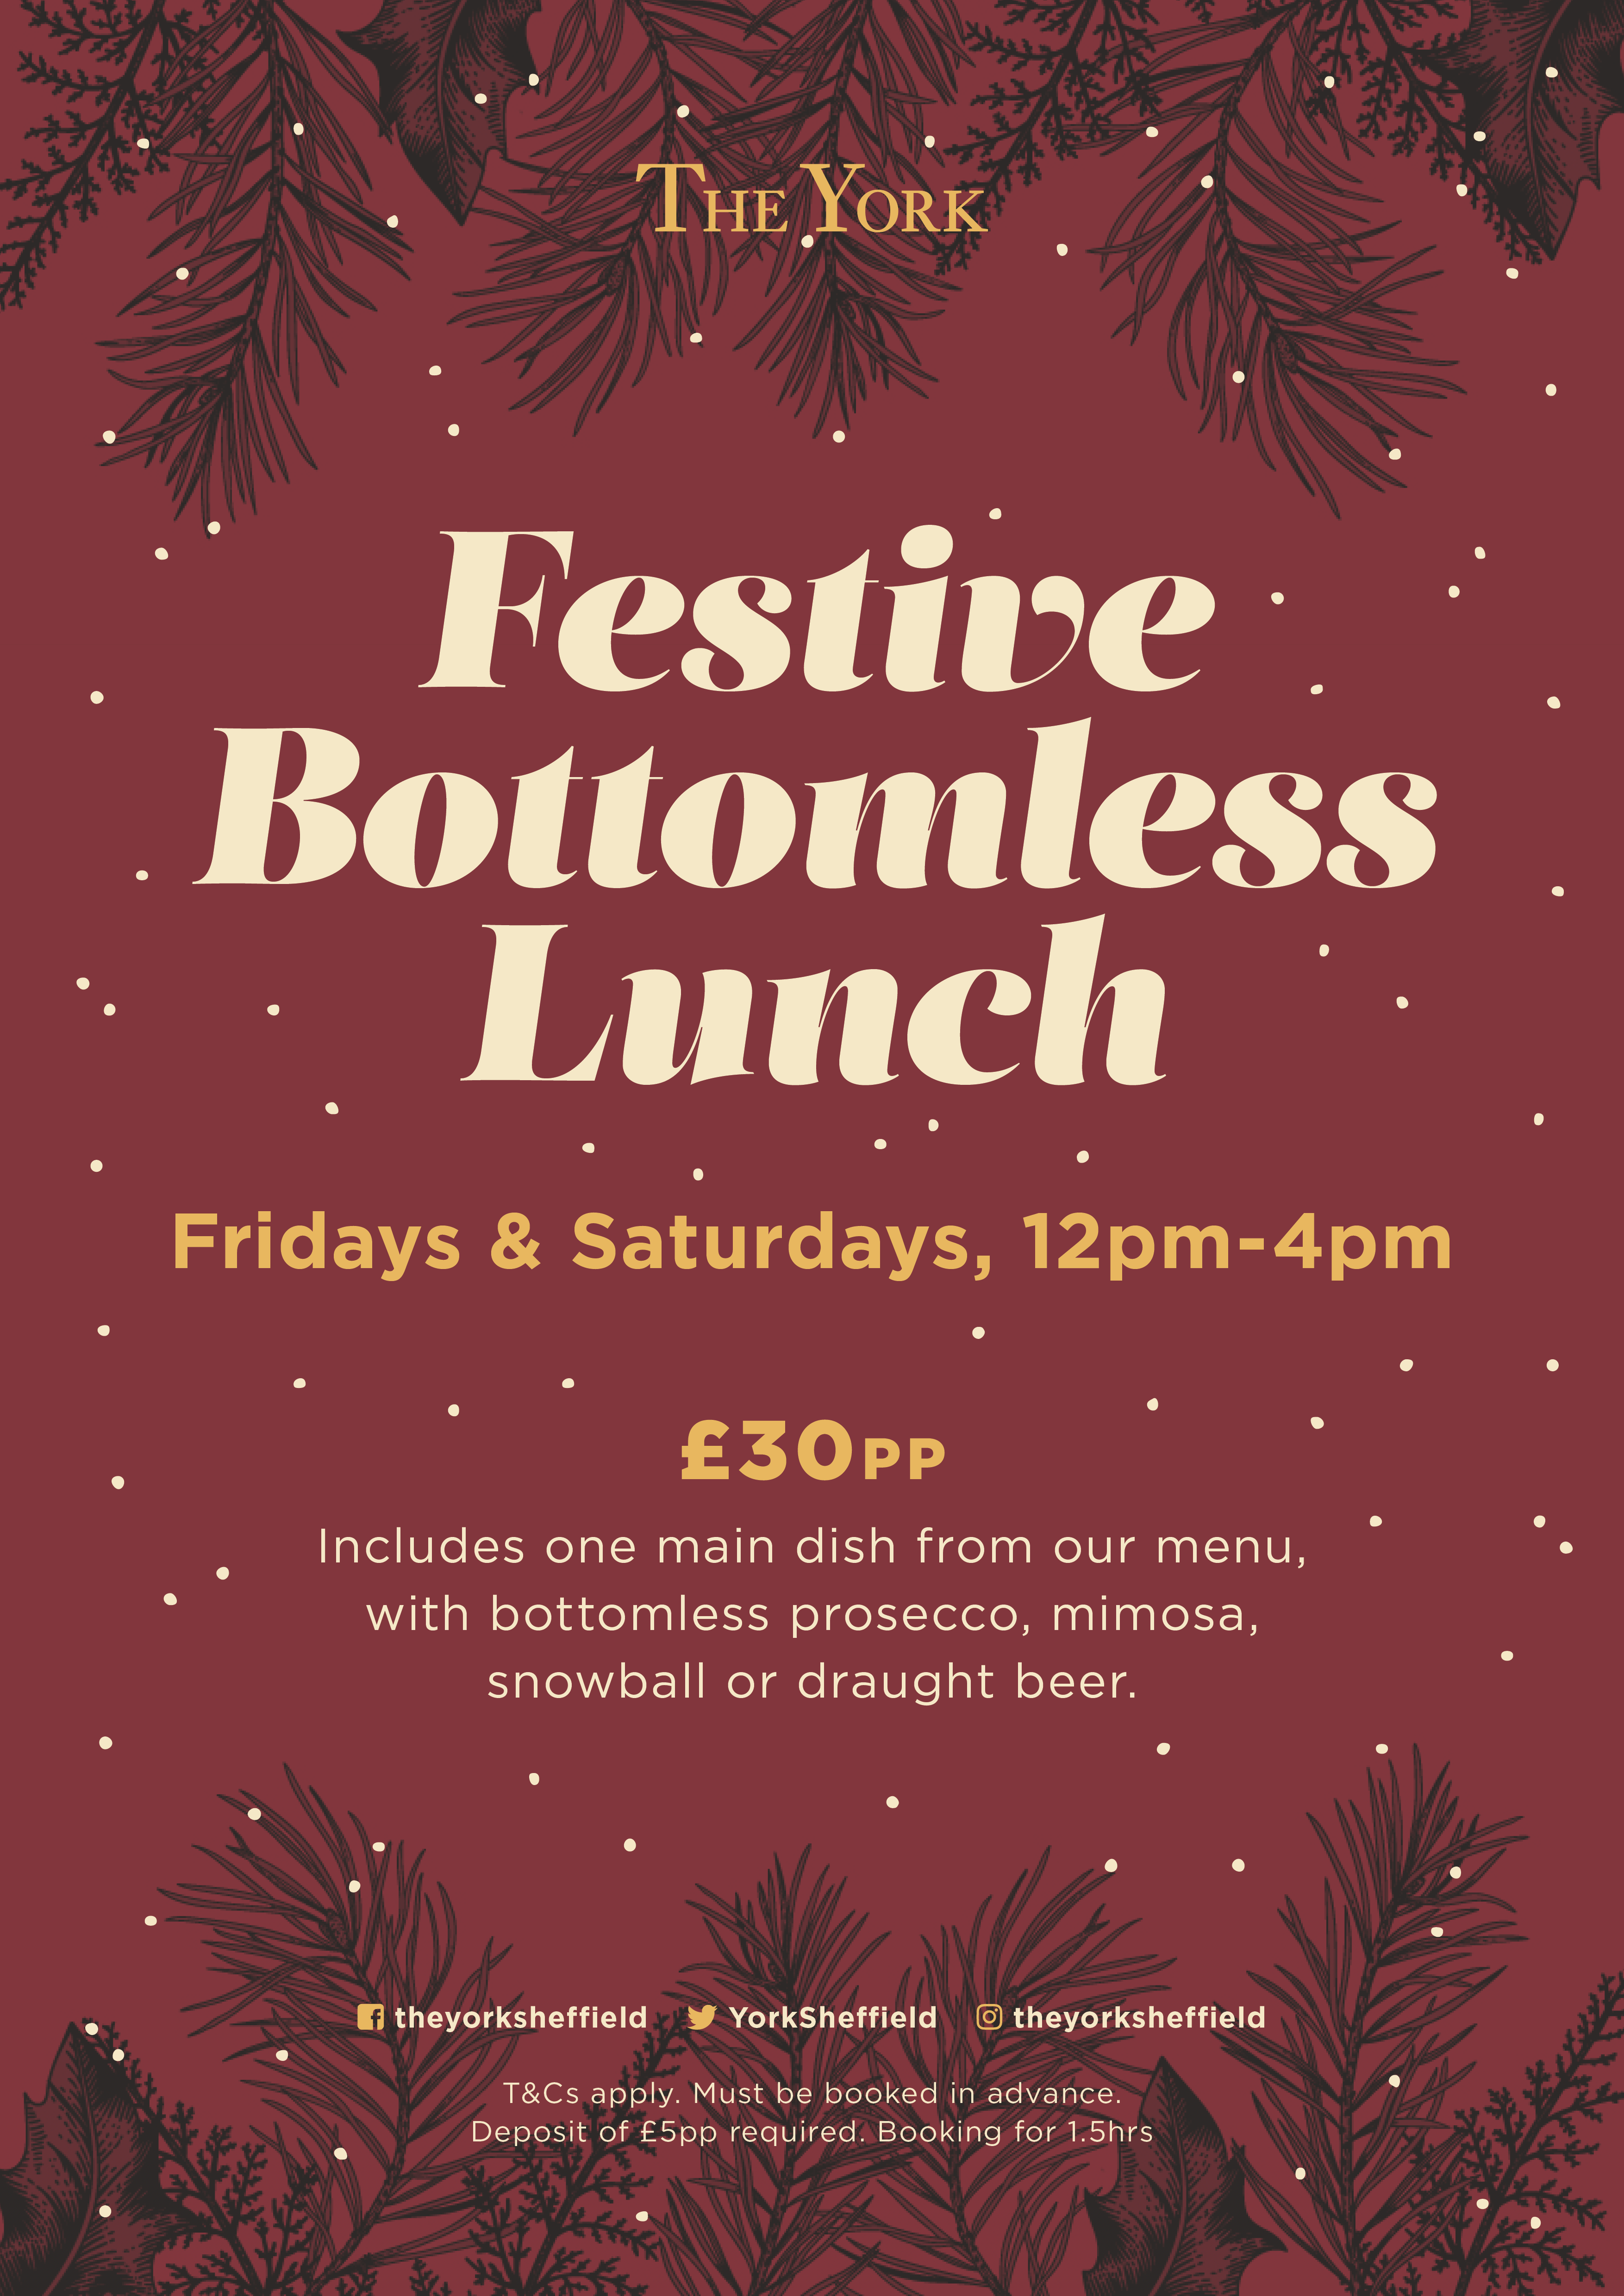 The York Festive Bottomless Lunch